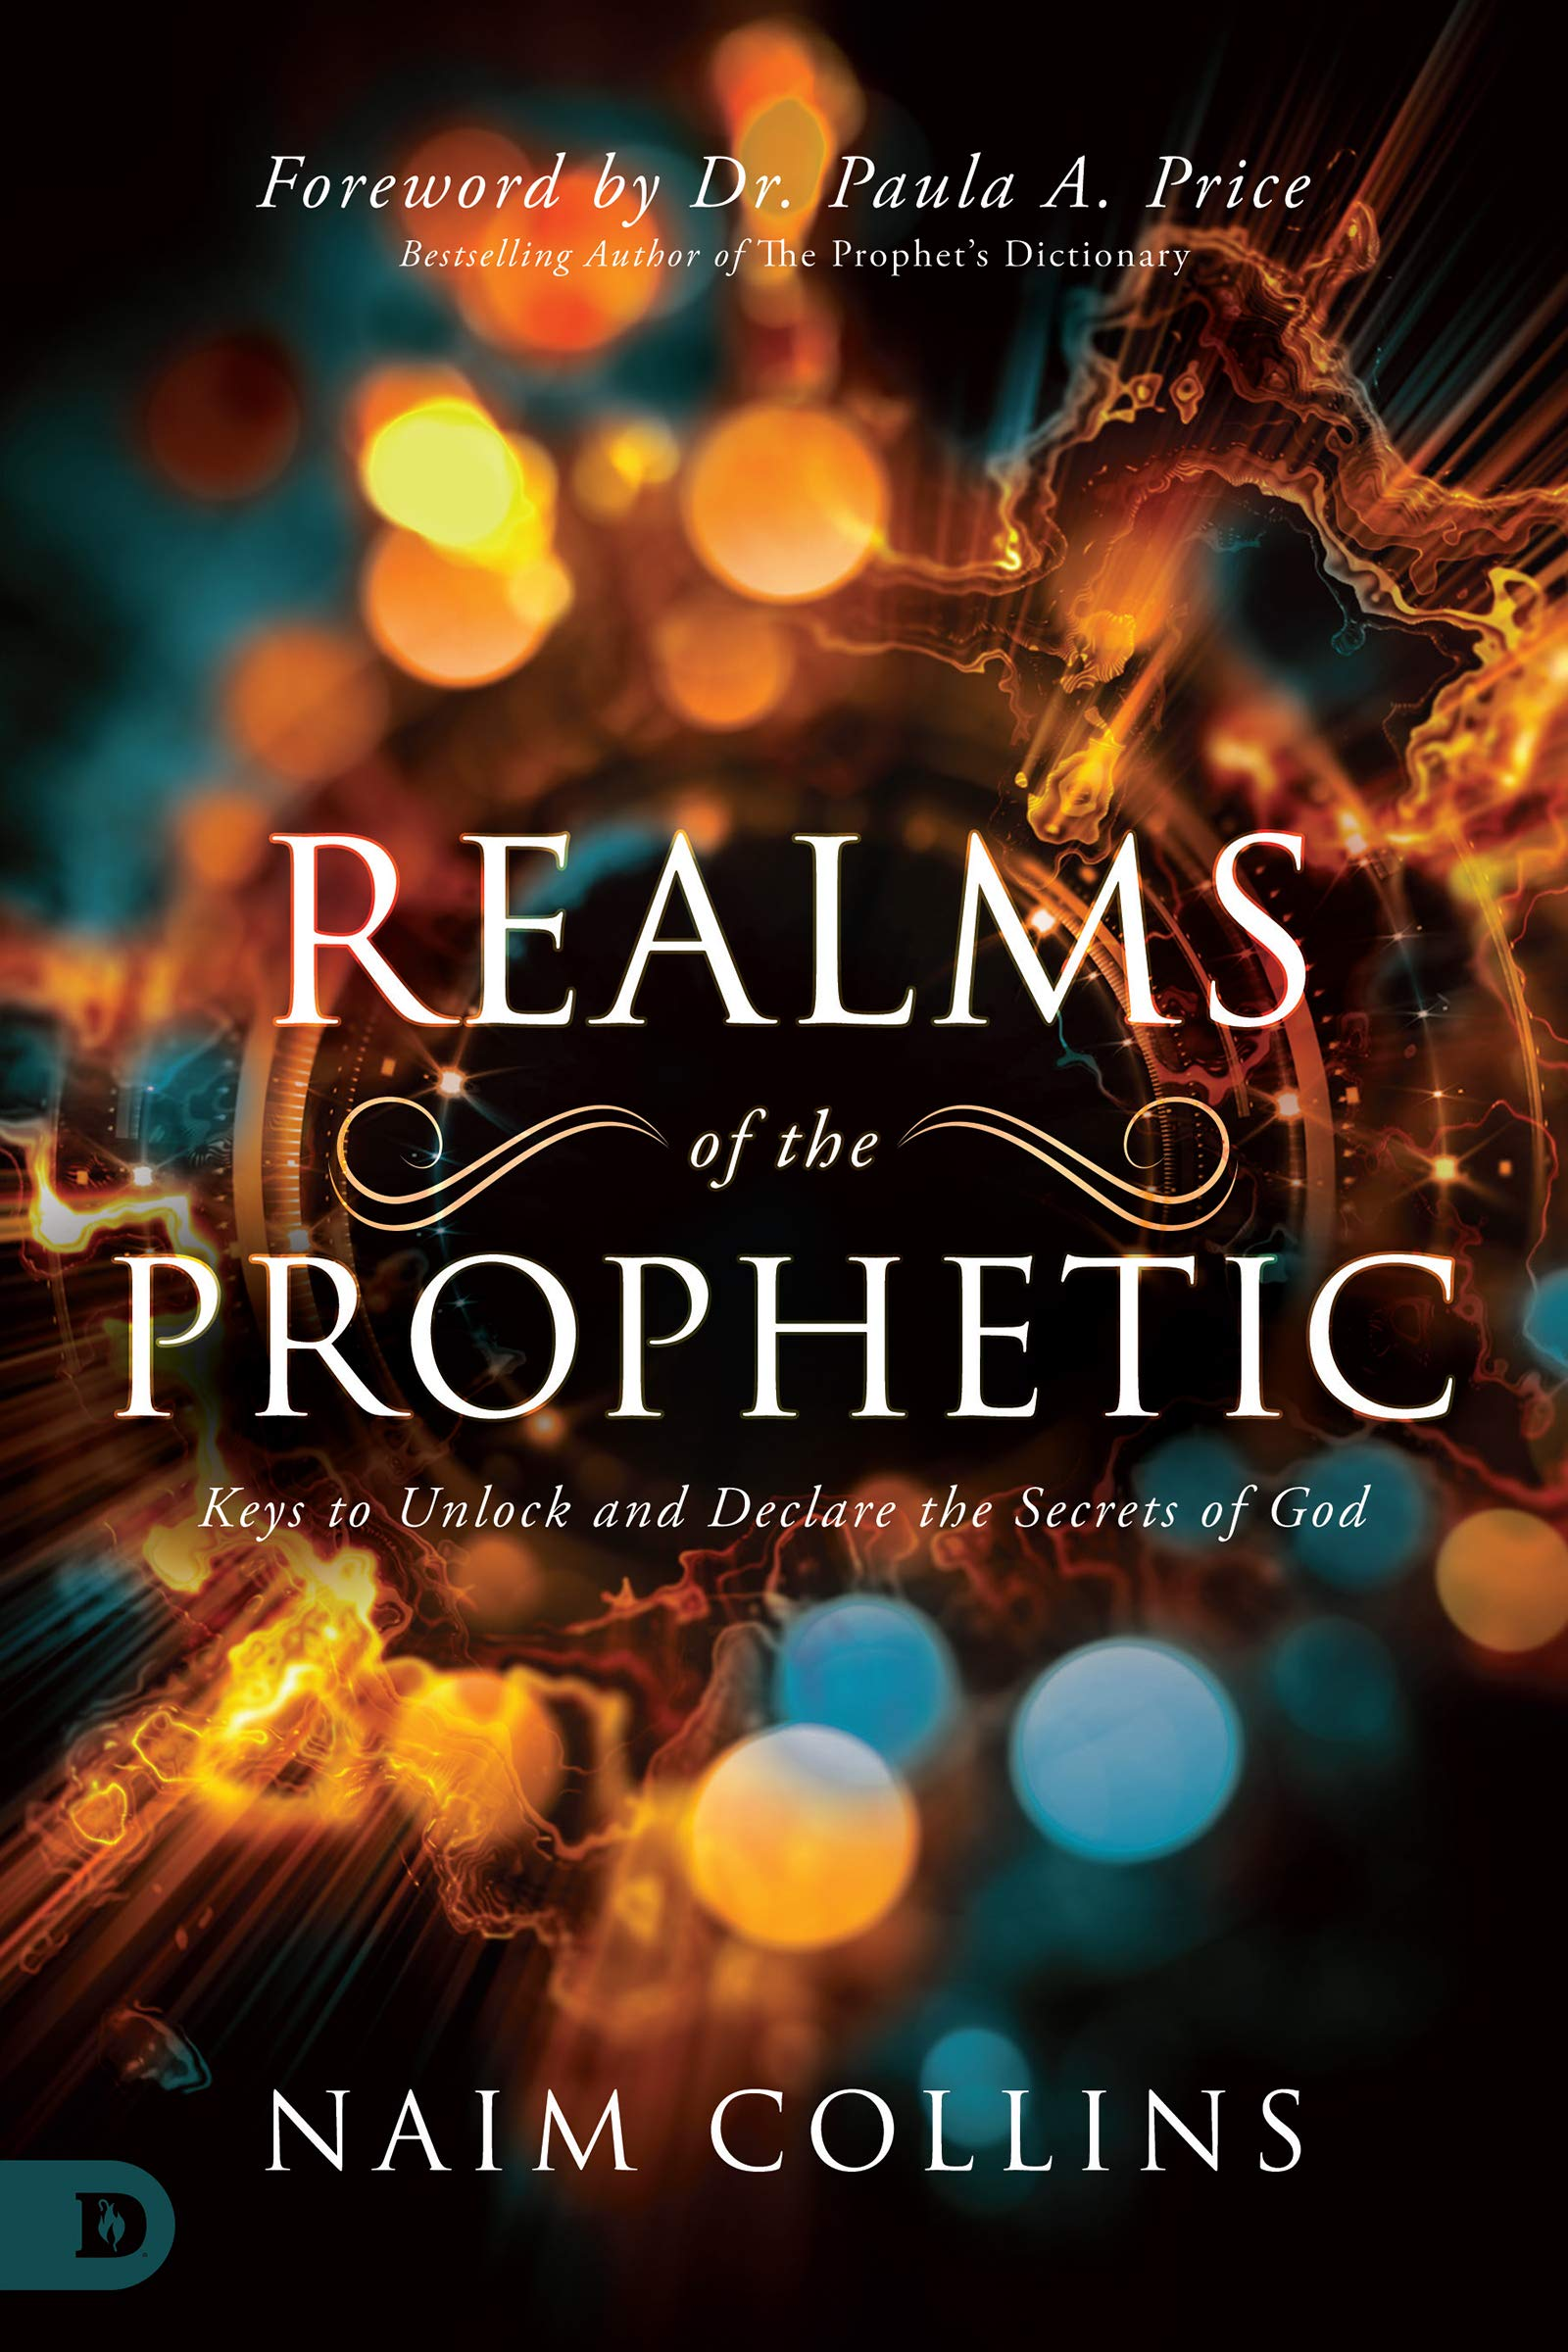 Realms of the Prophetic: Keys to Unlock and Declare the Secrets of